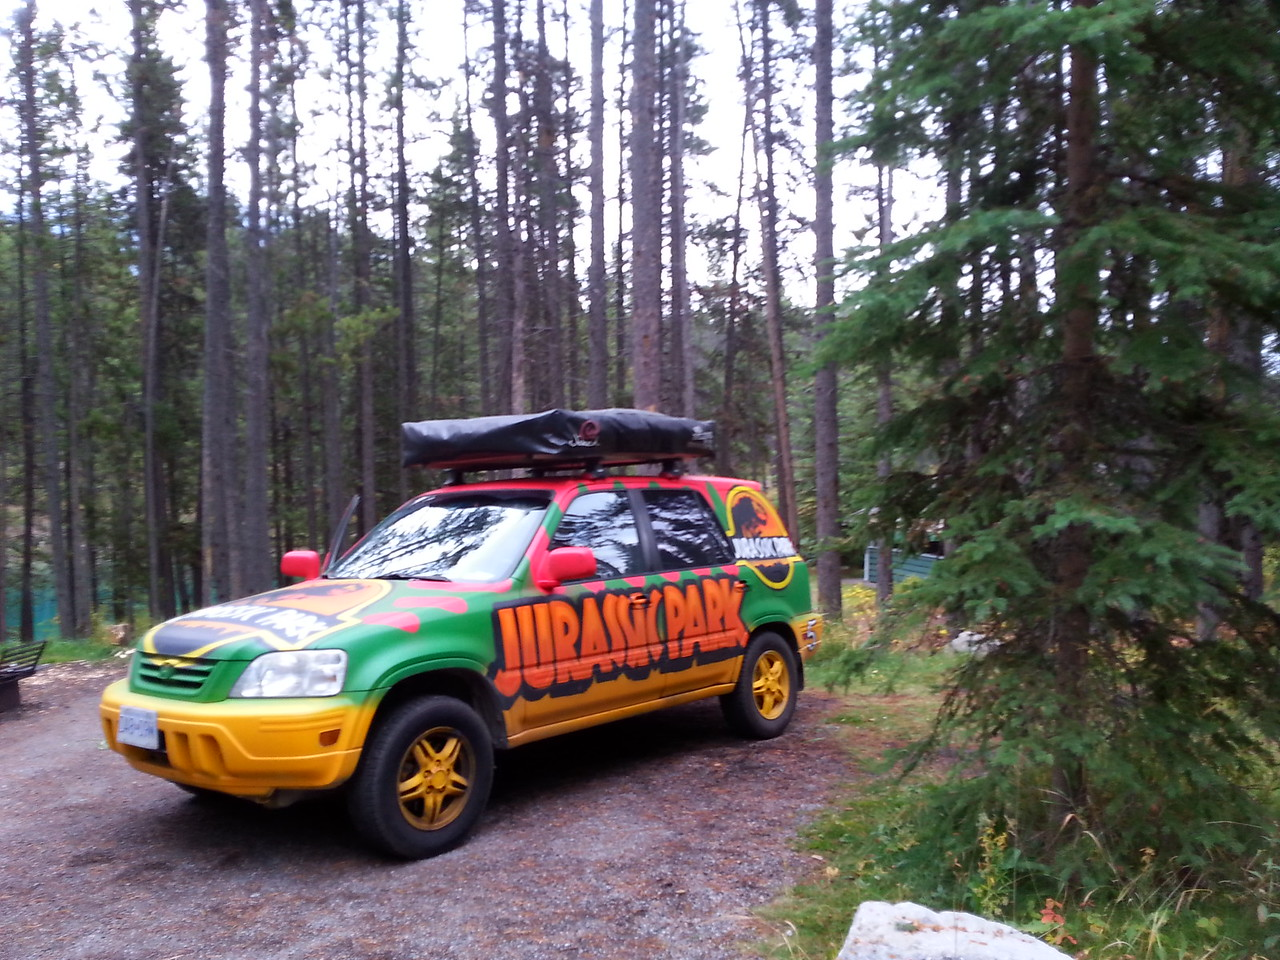 Another cool camper-Two Jack Lake